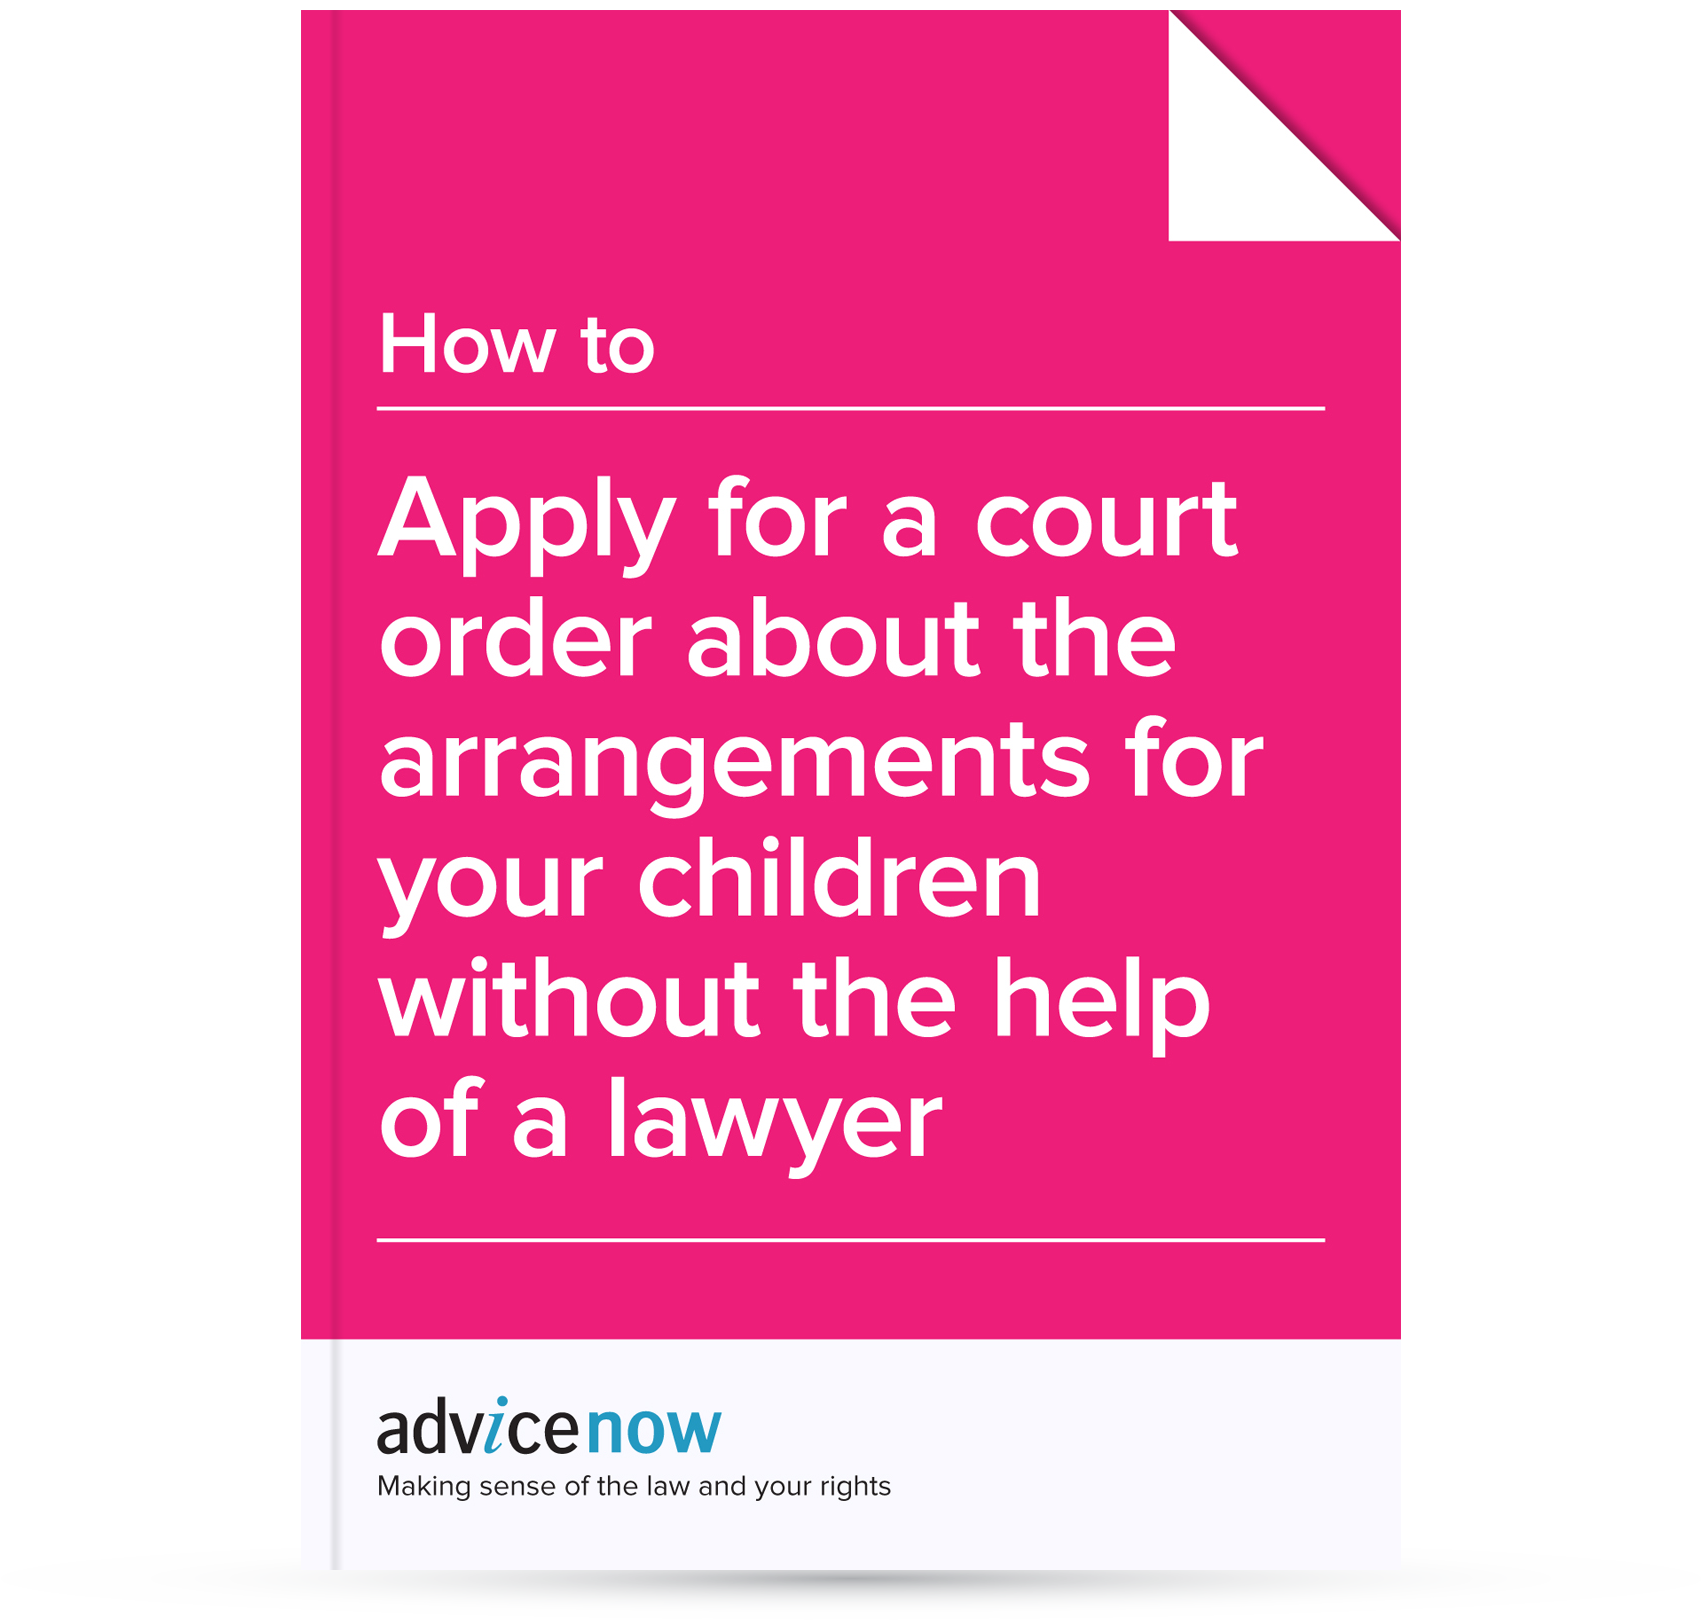 How To Apply For A Court Order About The Arrangements For